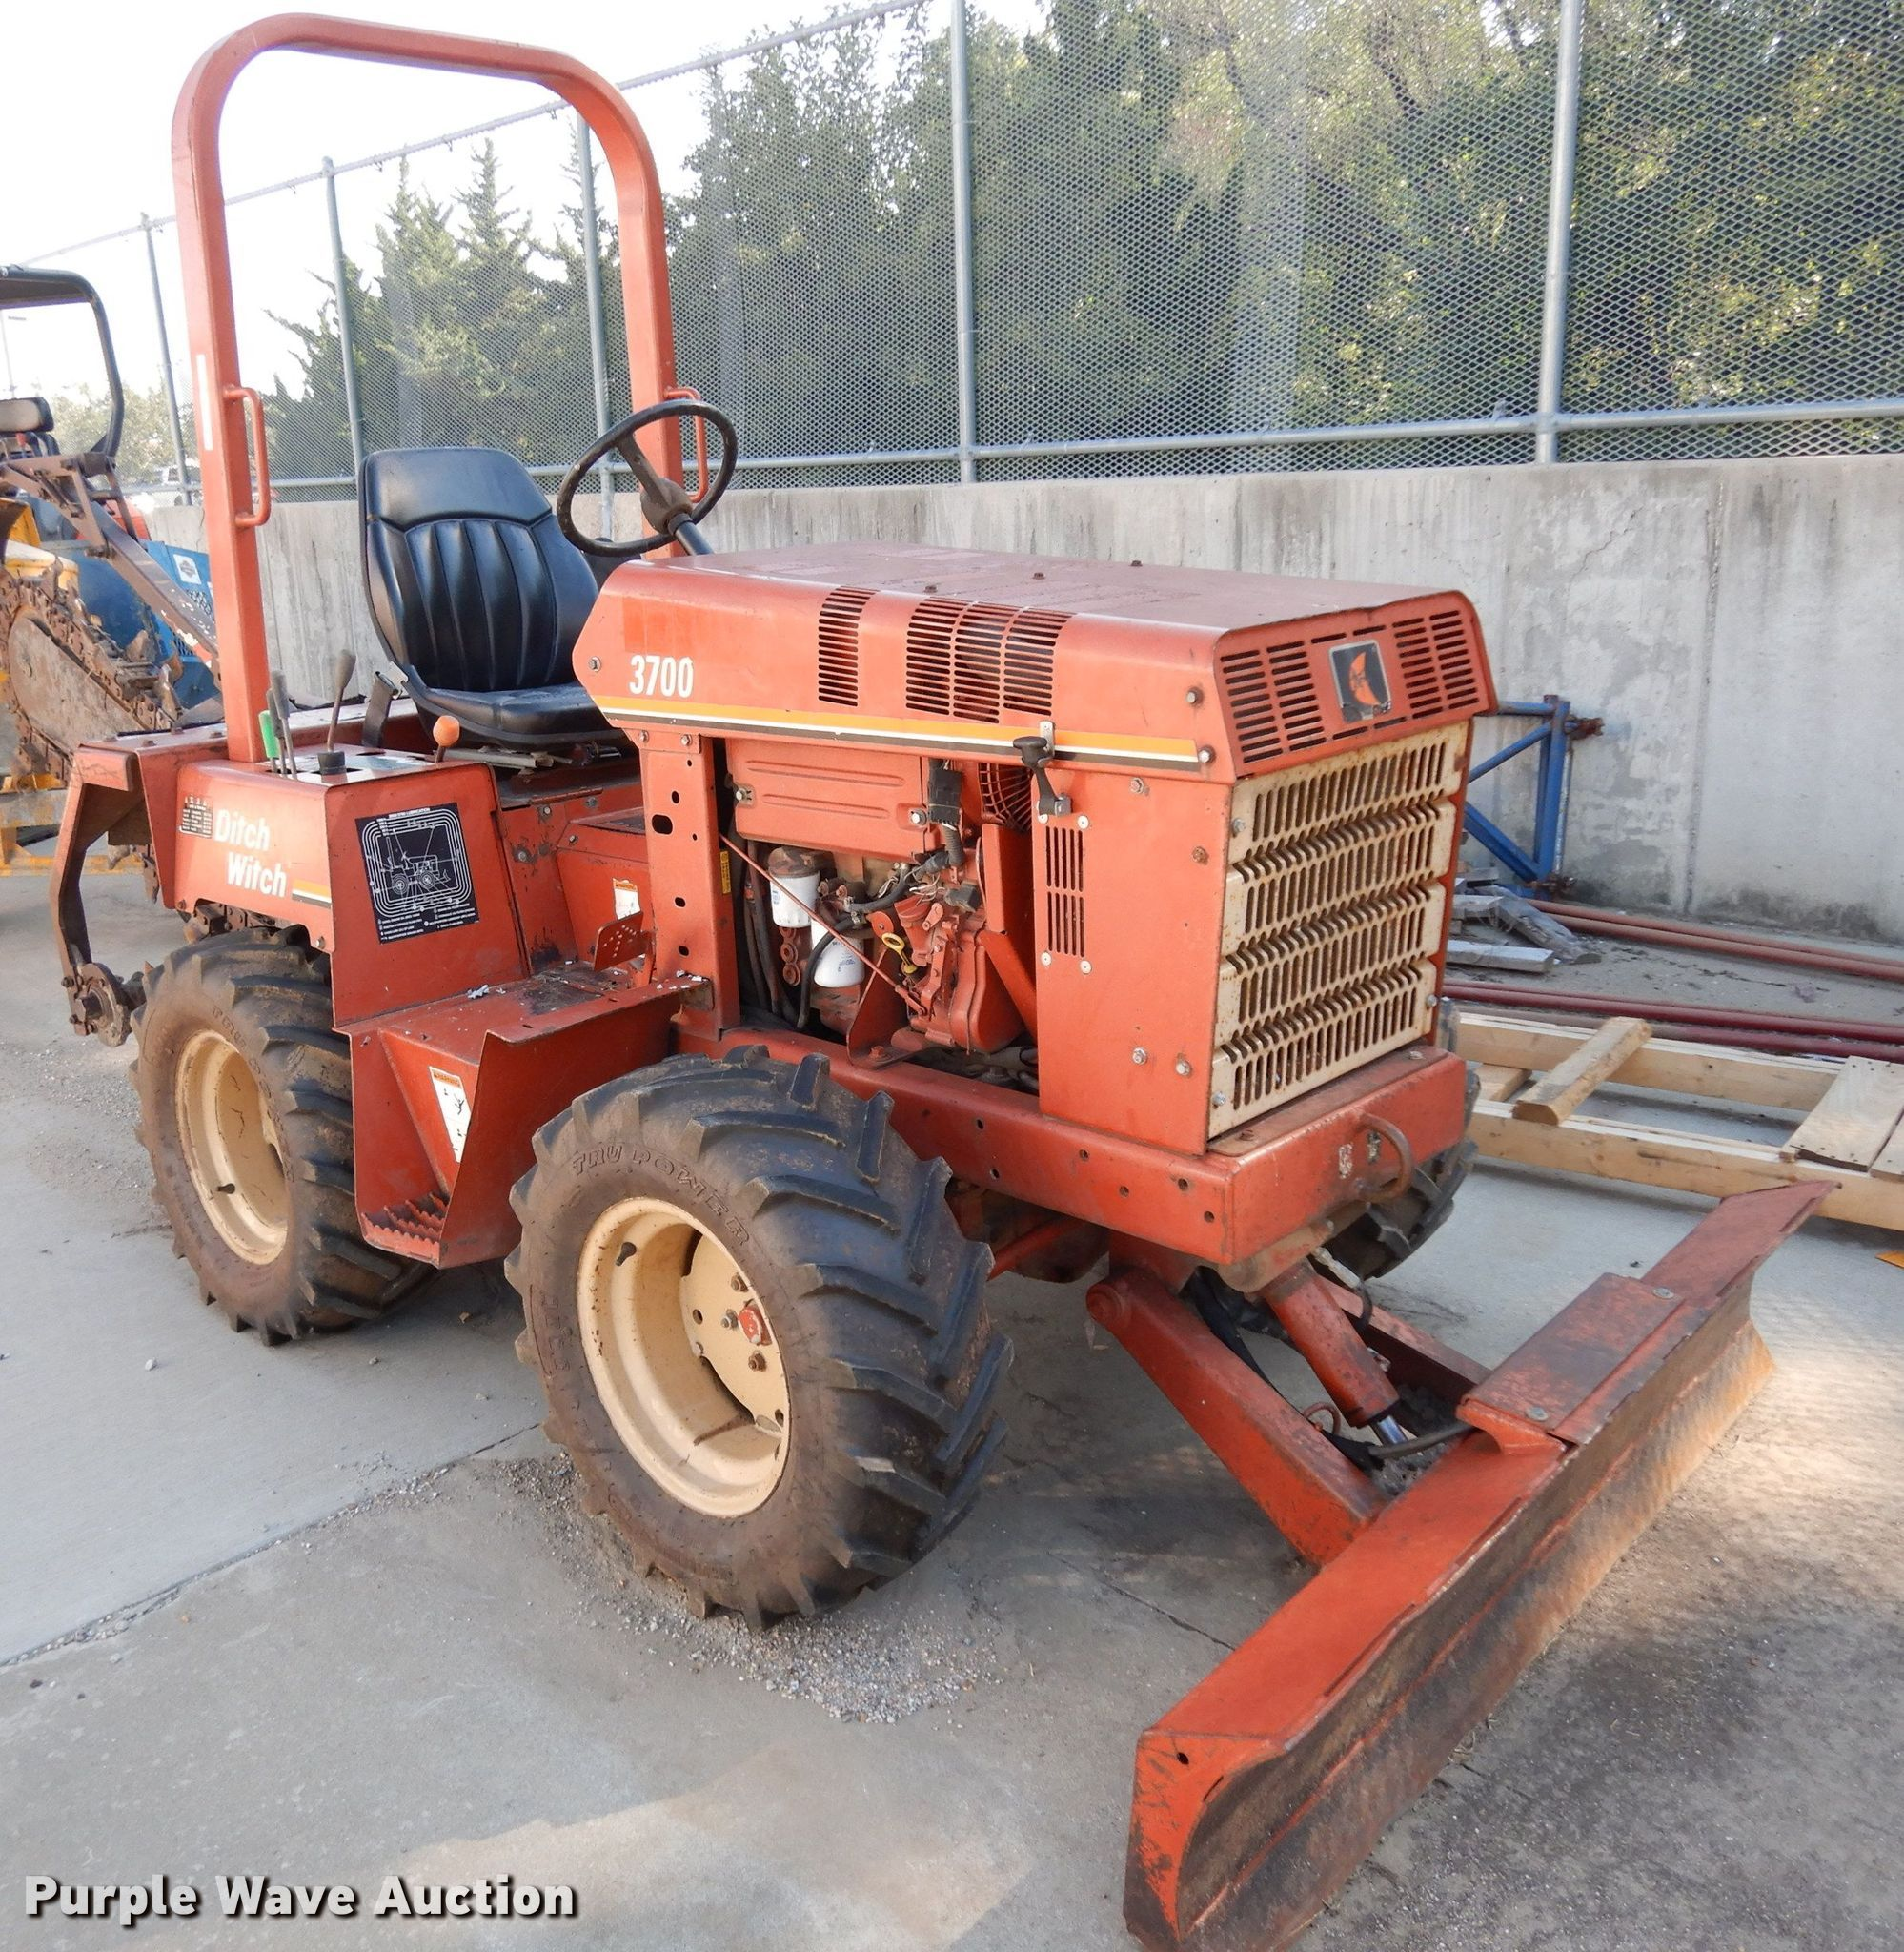 Ditch Witch 3700DD Trencher for sale or rent sunflower equipment rentals topeka lawrence kansas blue springs missouri